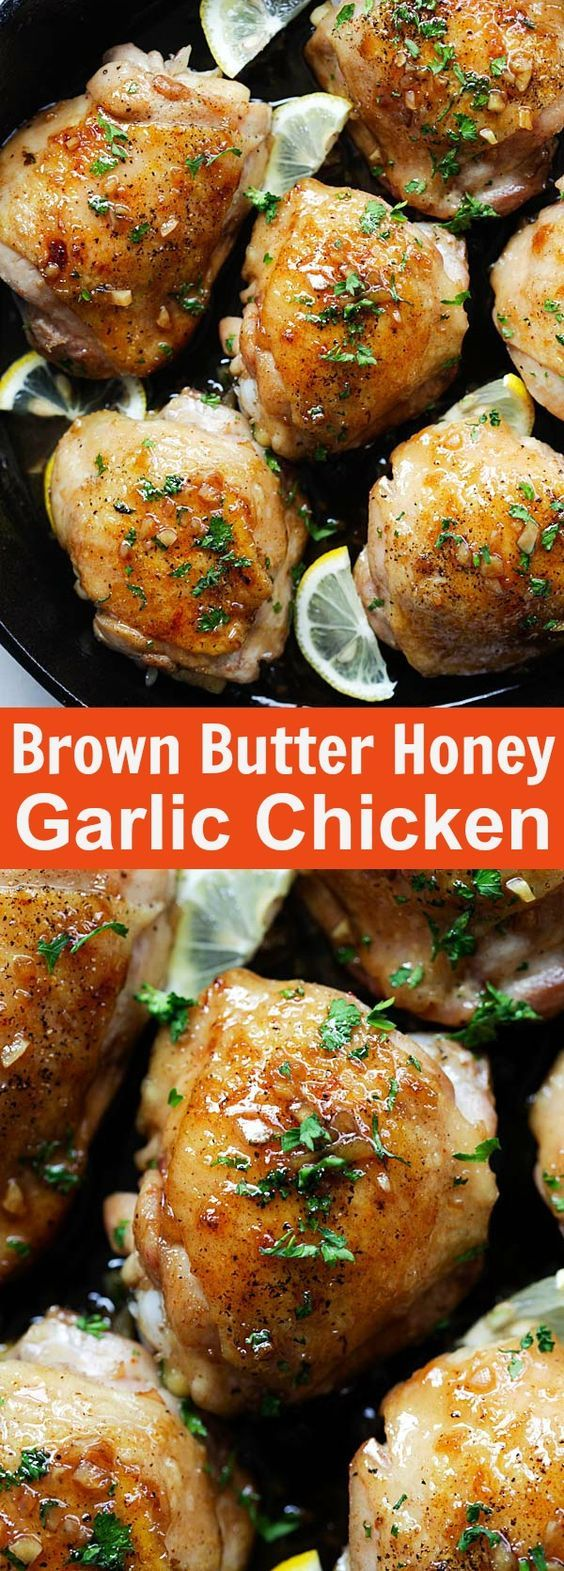 Brown Butter Honey Garlic Chicken - sweet, savory and sticky skillet chicken with the most delicious honey garlic sauce. Easy dinner for the family | rasamalaysia.com